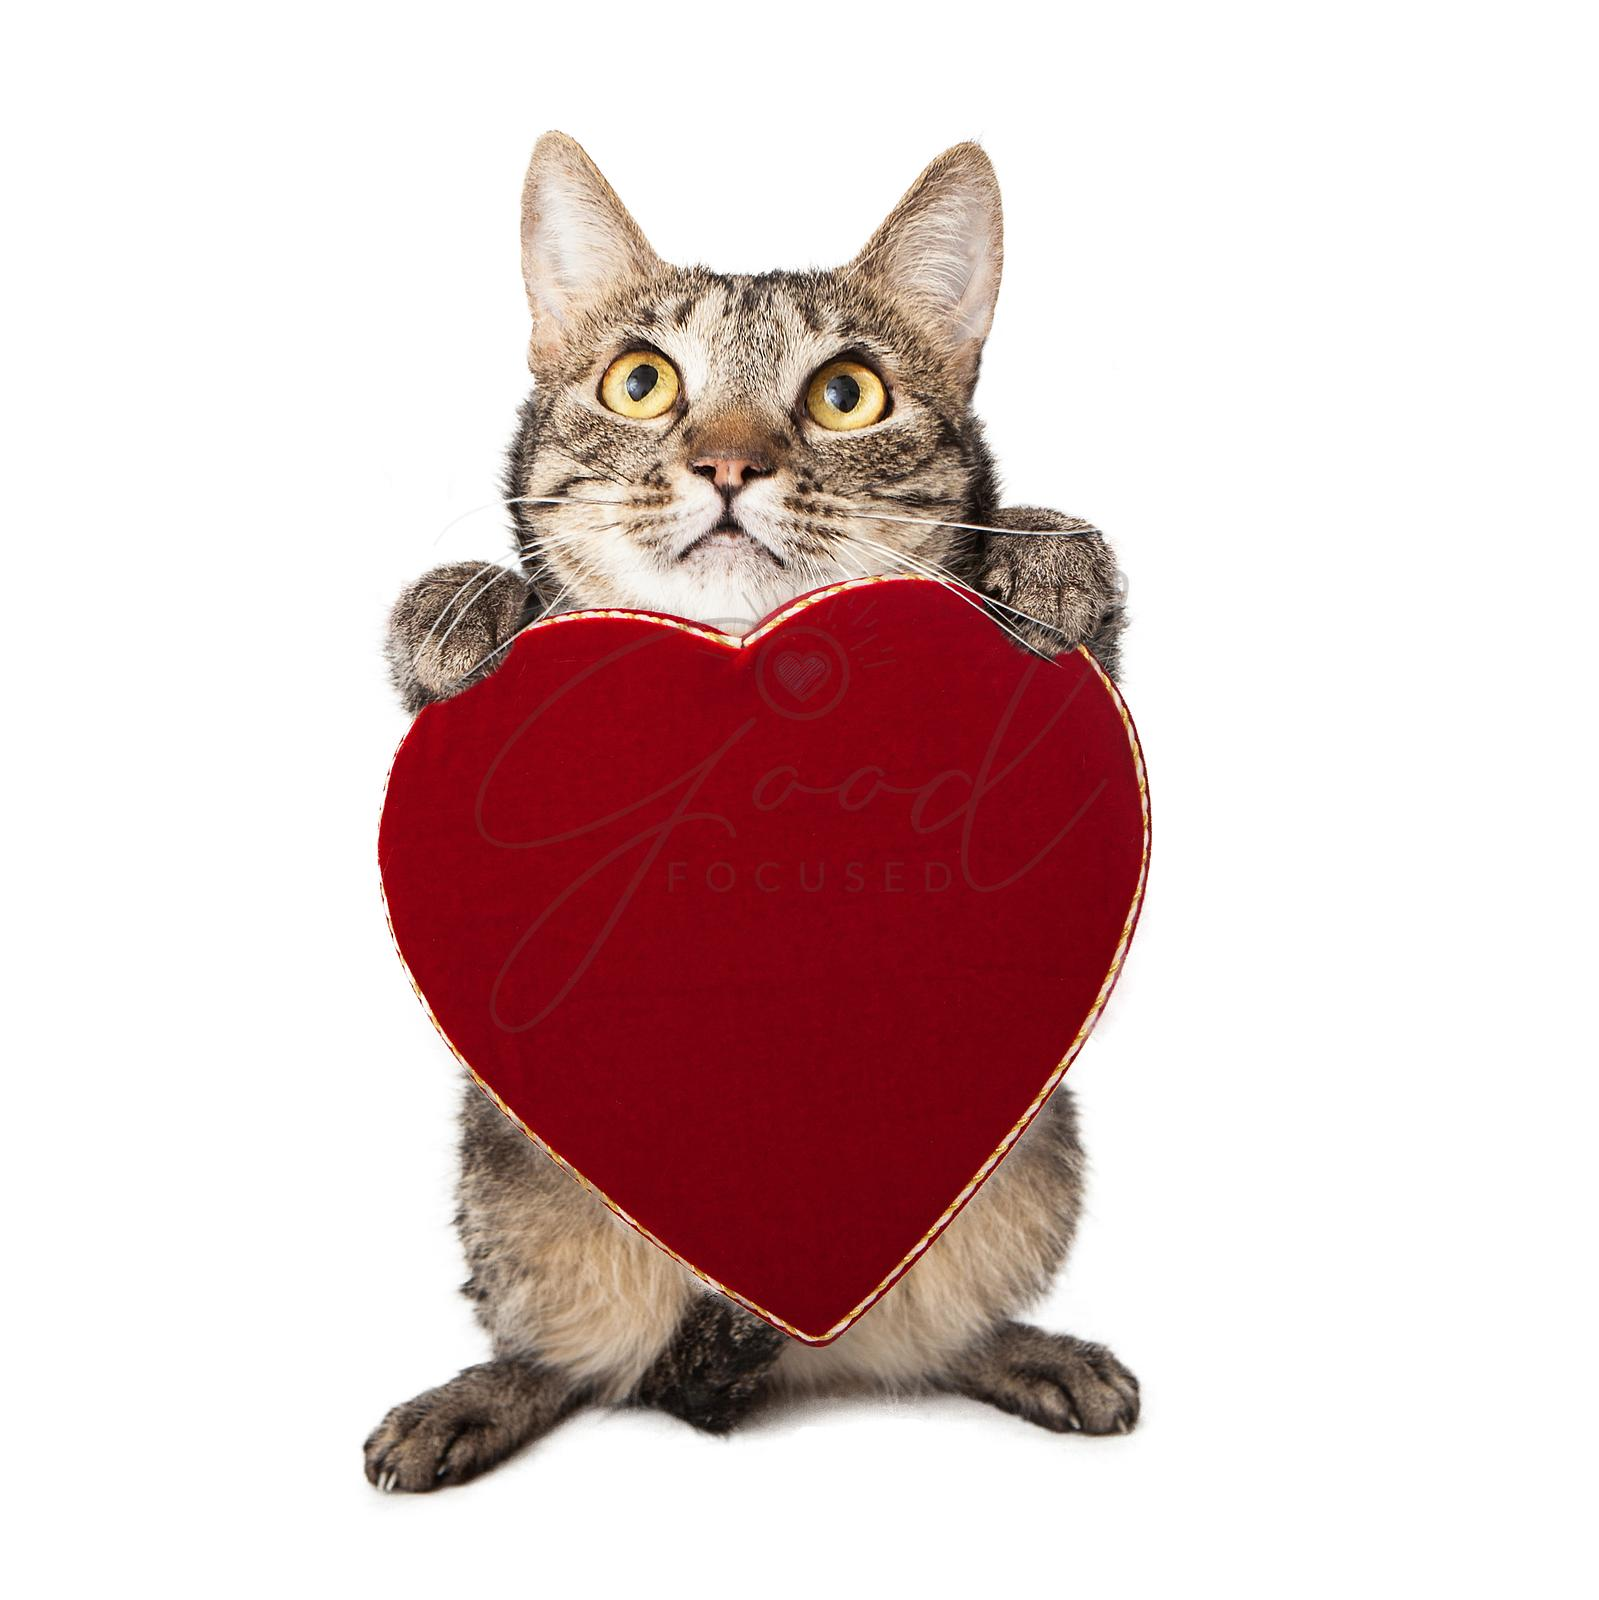 Cat Holding Red Heart